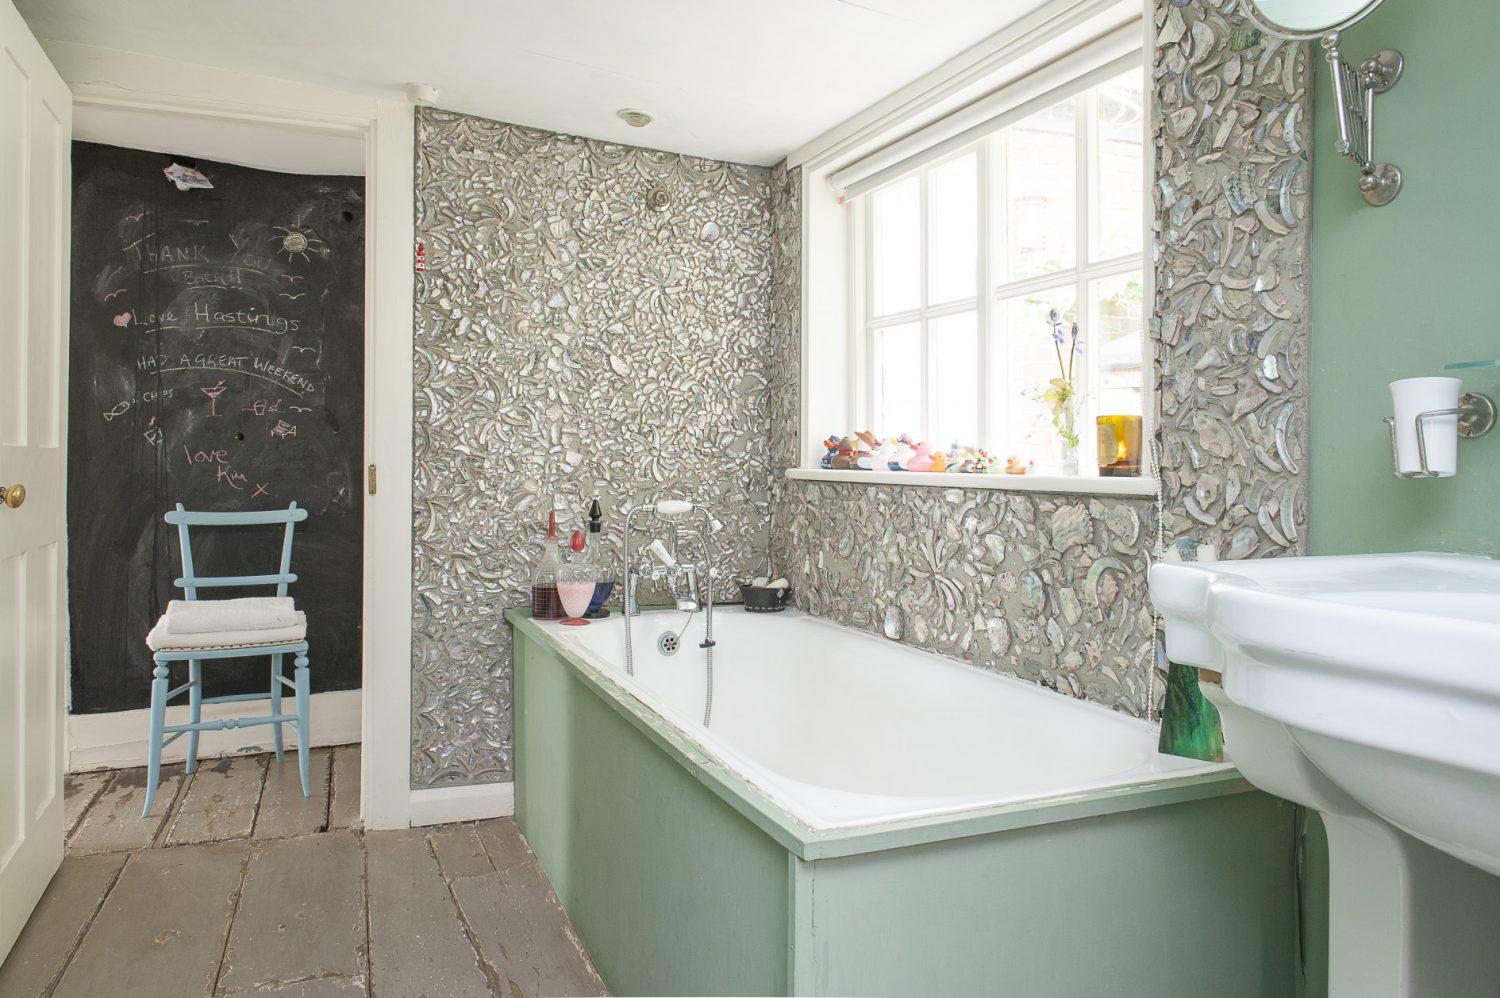 Two walls of the bathroom were mosaiced by Lionel in an intricate pattern made from crushed shells that were sourced from South Africa by a friend. Outside the bathroom, a warm thank you message has been chalked onto the blackboard wall by a friend